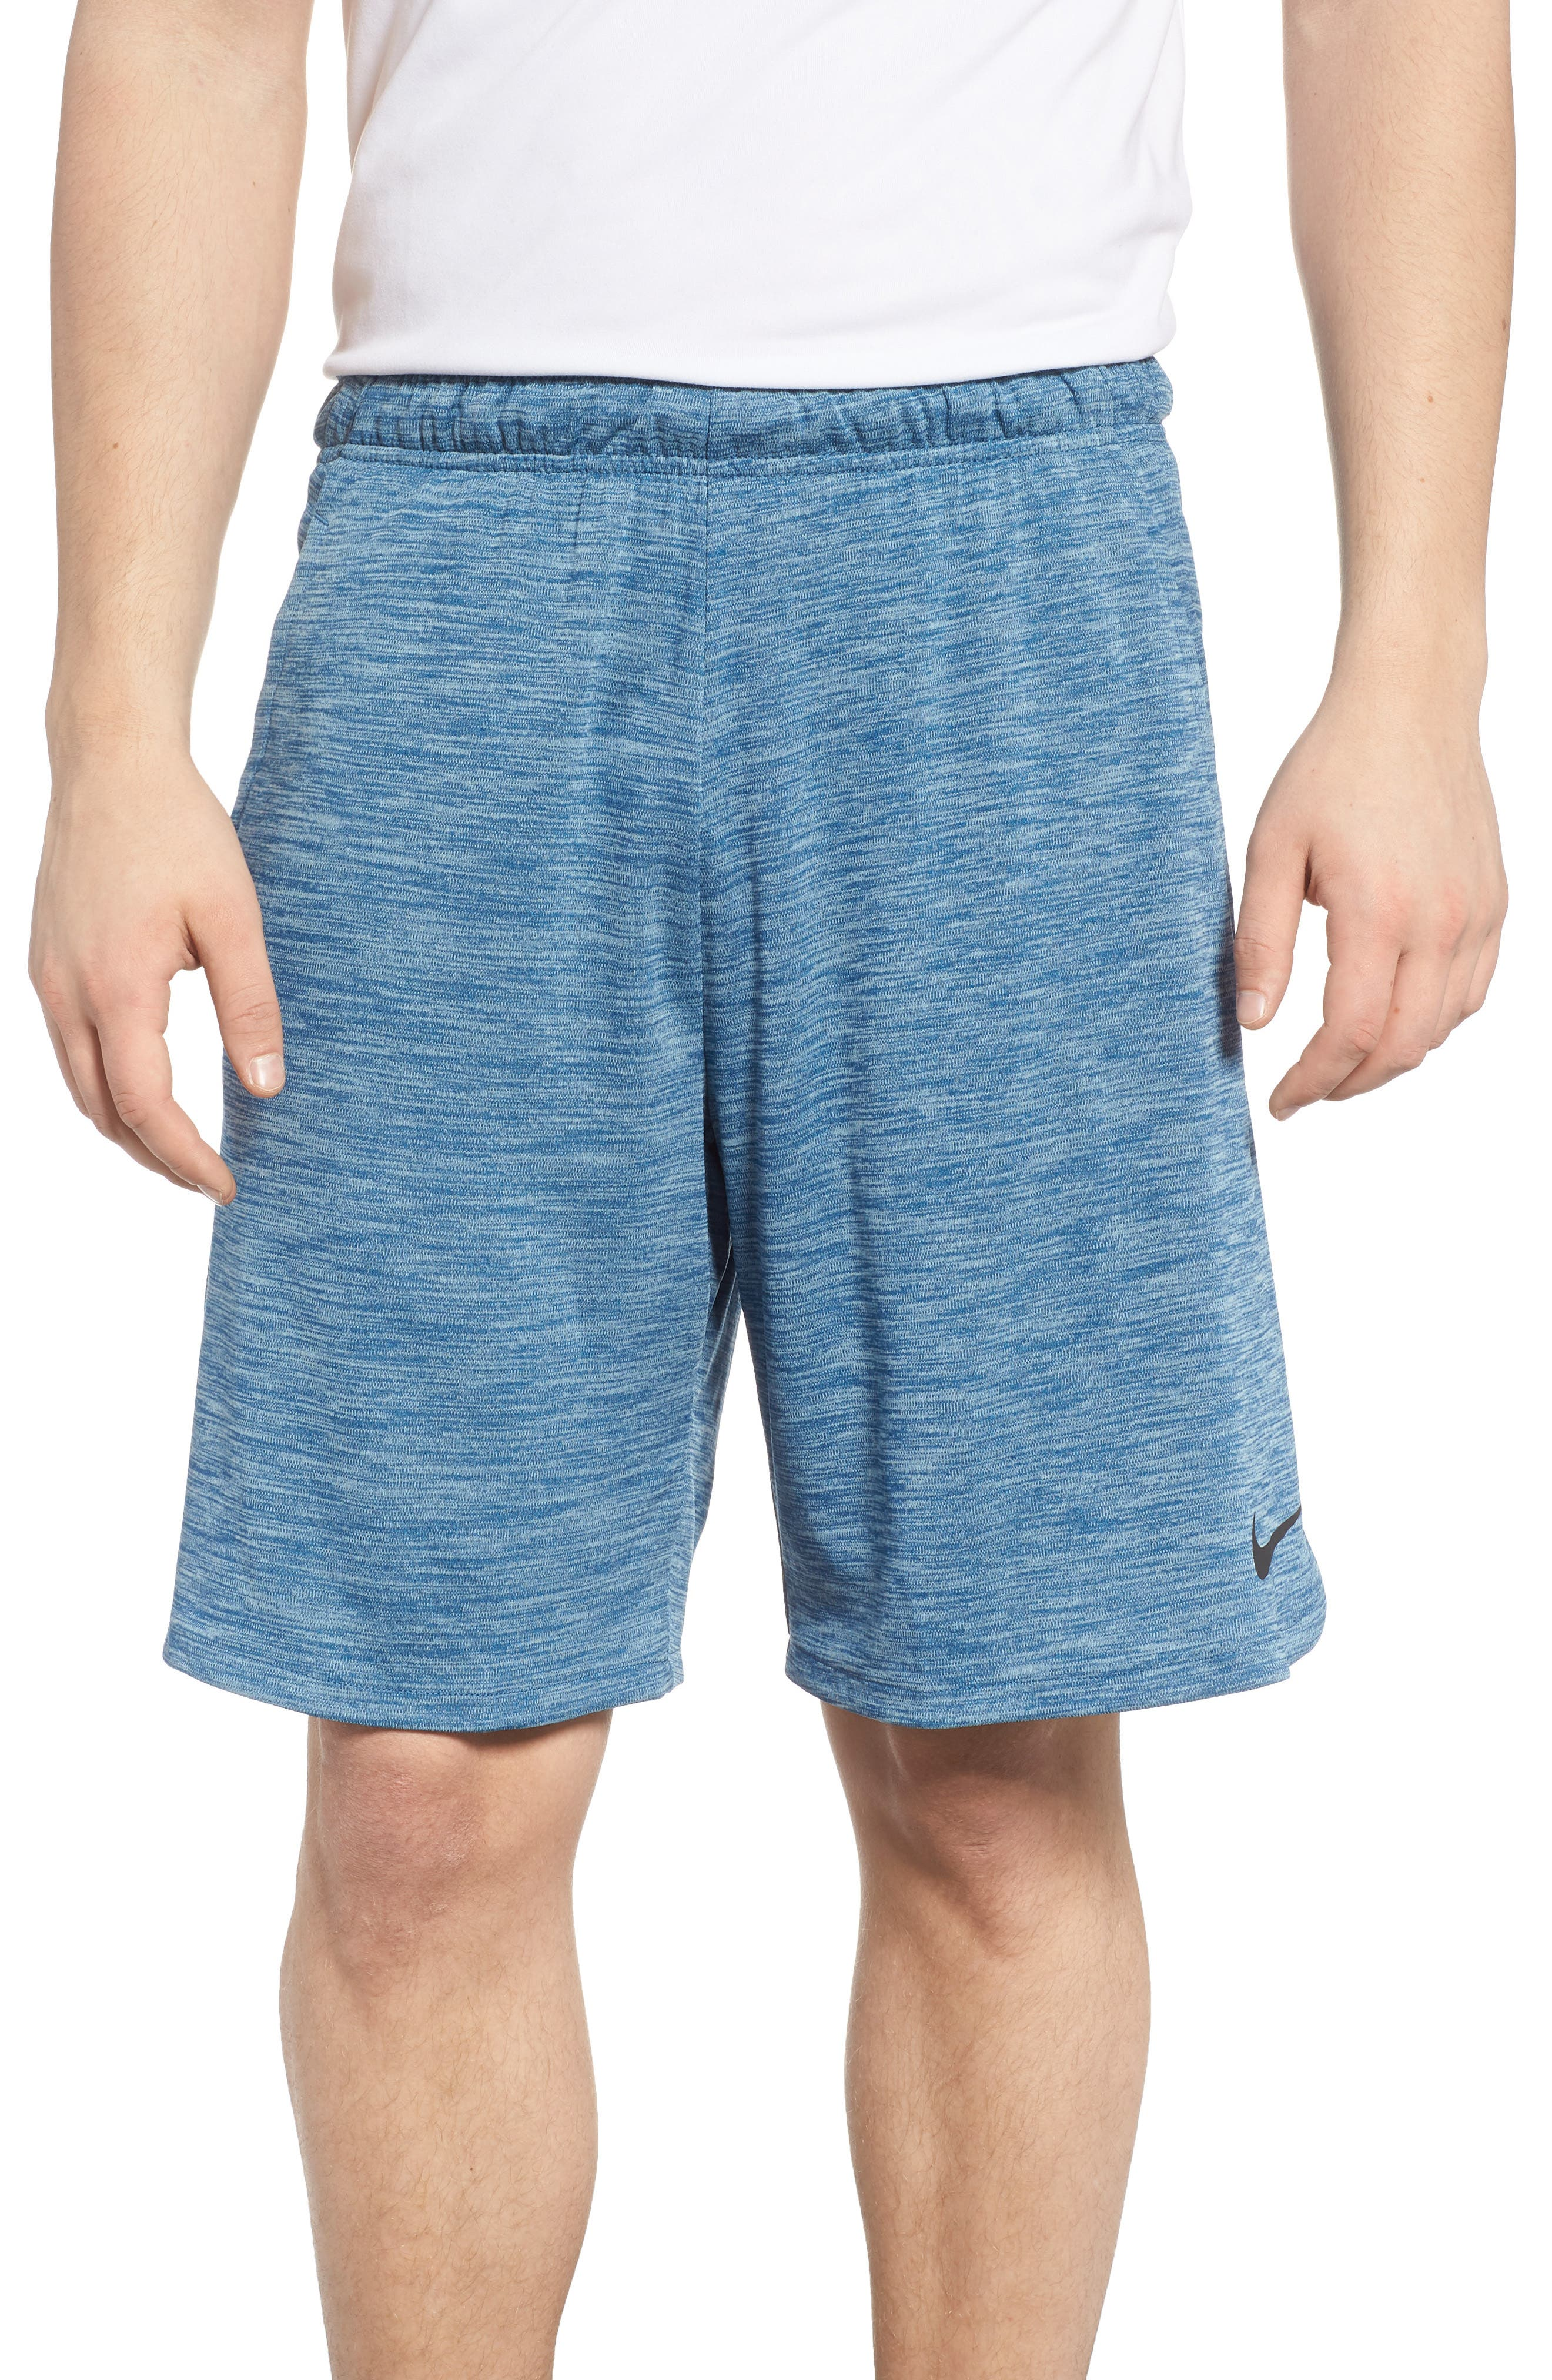 Dry Training Shorts,                             Main thumbnail 1, color,                             Blue Force/ Black